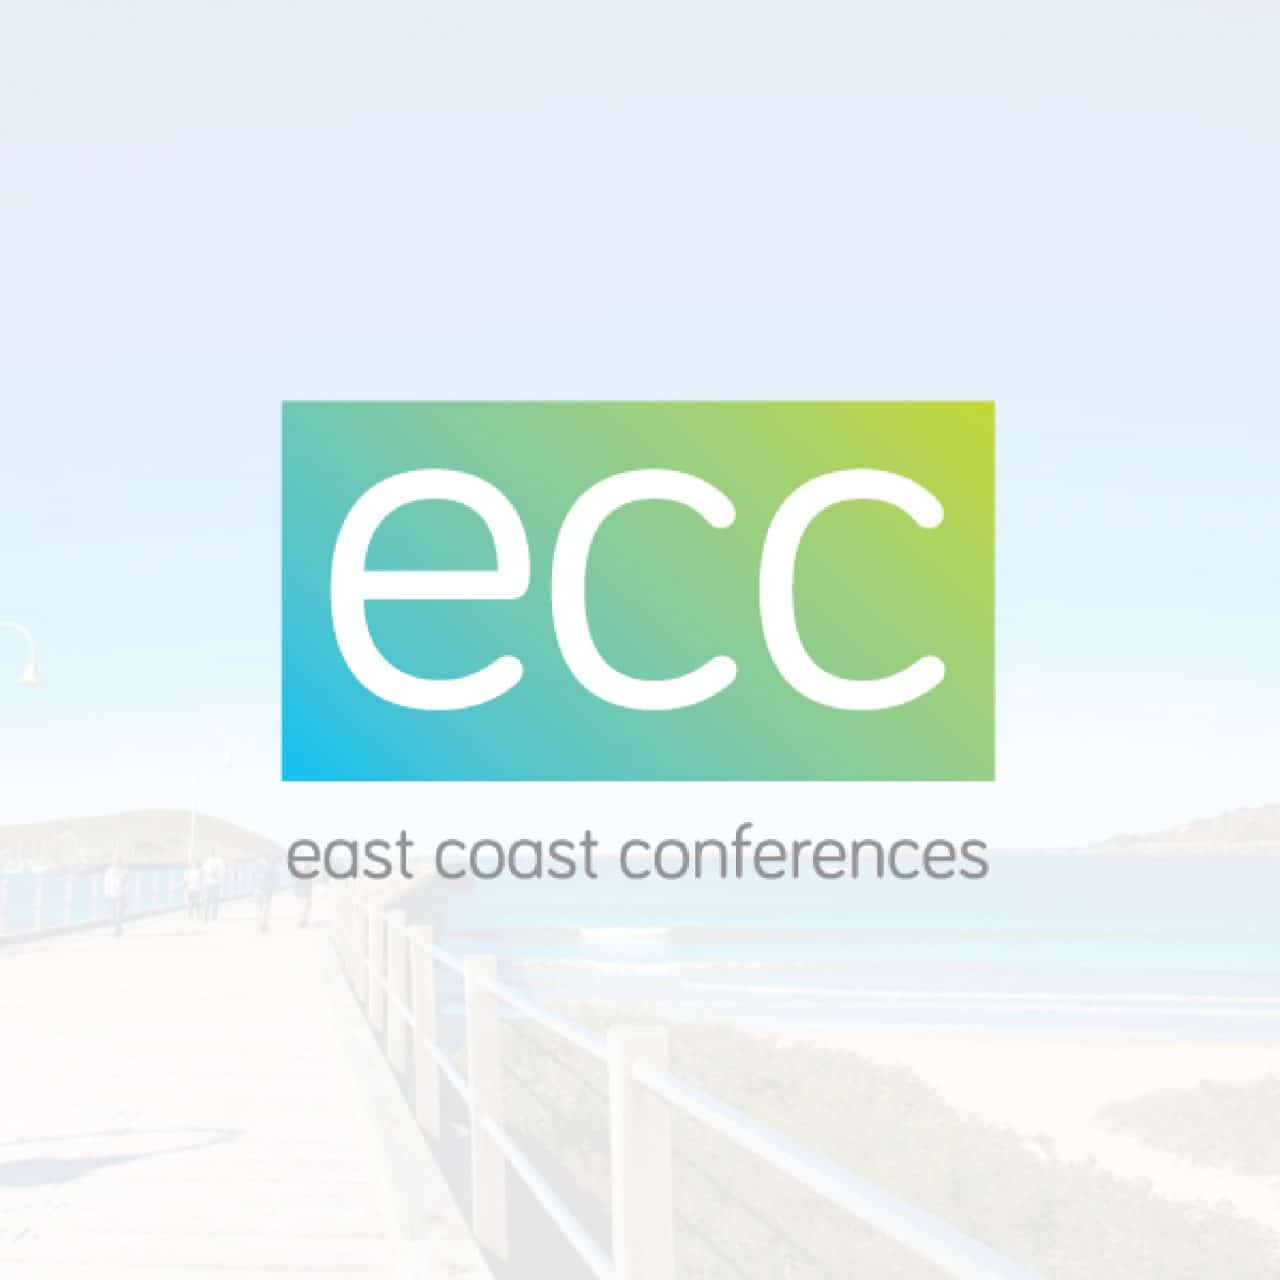 east coast conferences logo coffs